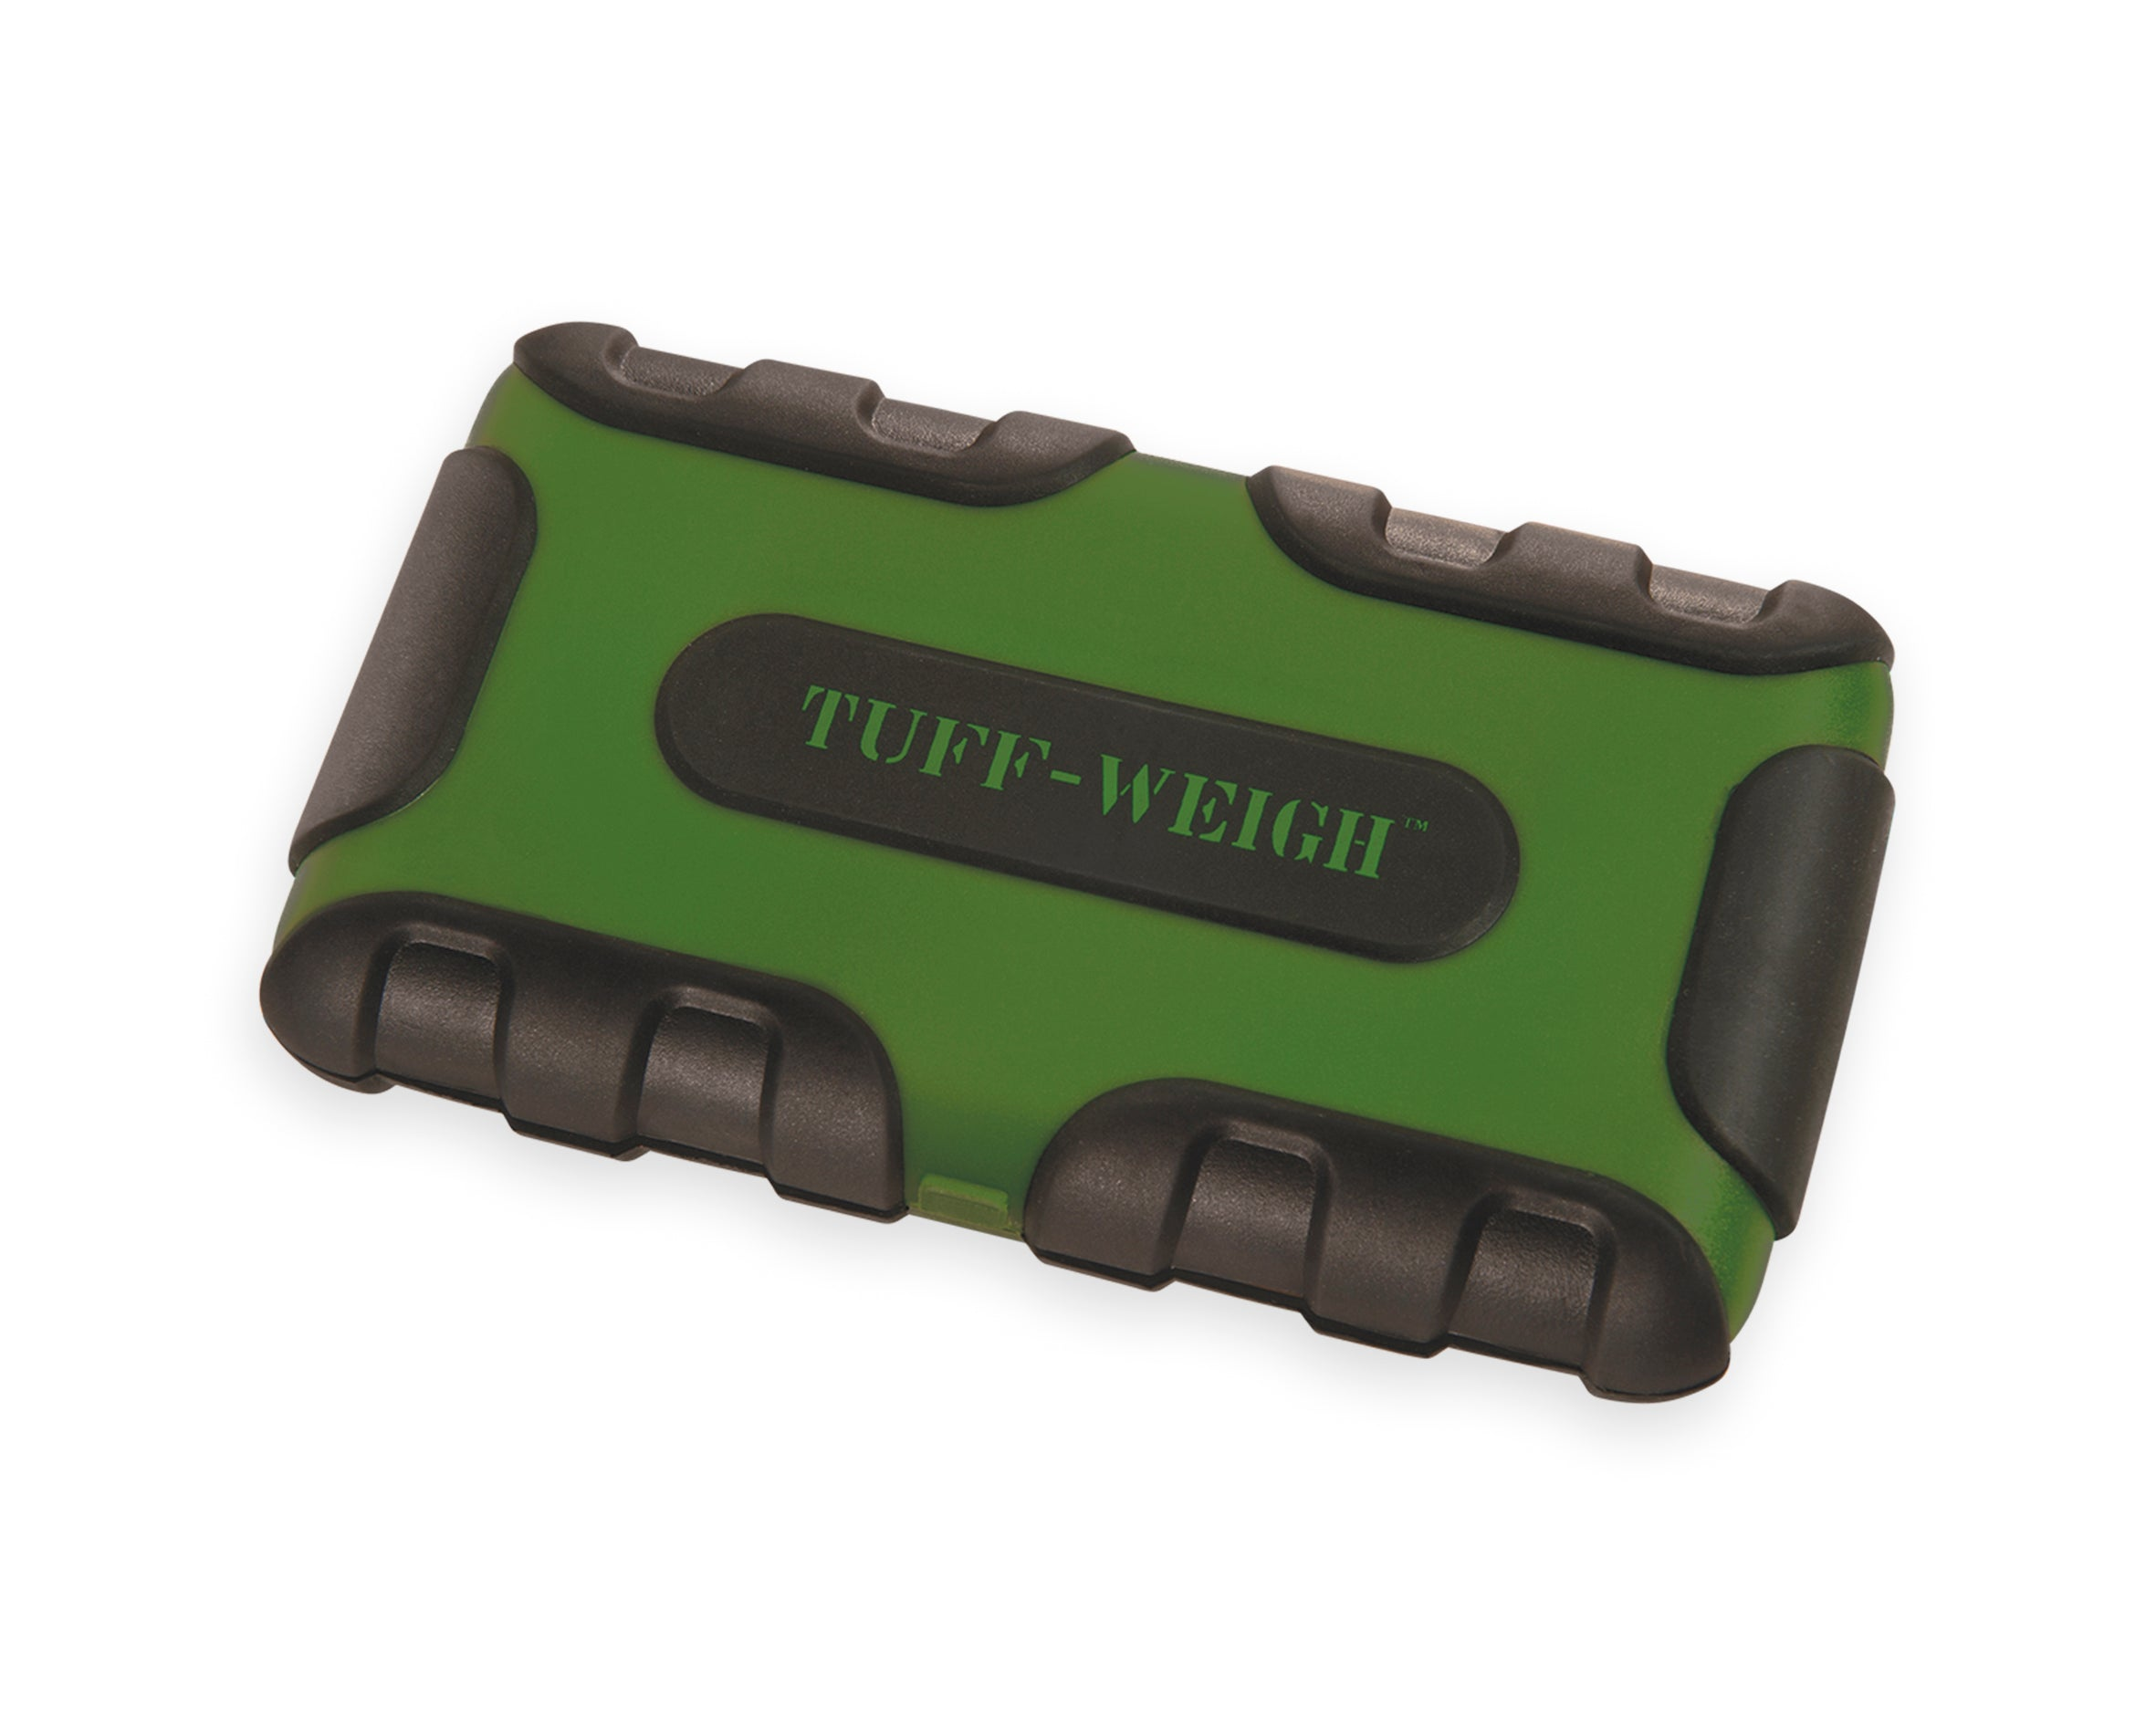 TUF-100 On Balance Tuff-Weigh Pocket Scale - Green 100g x 0.01g